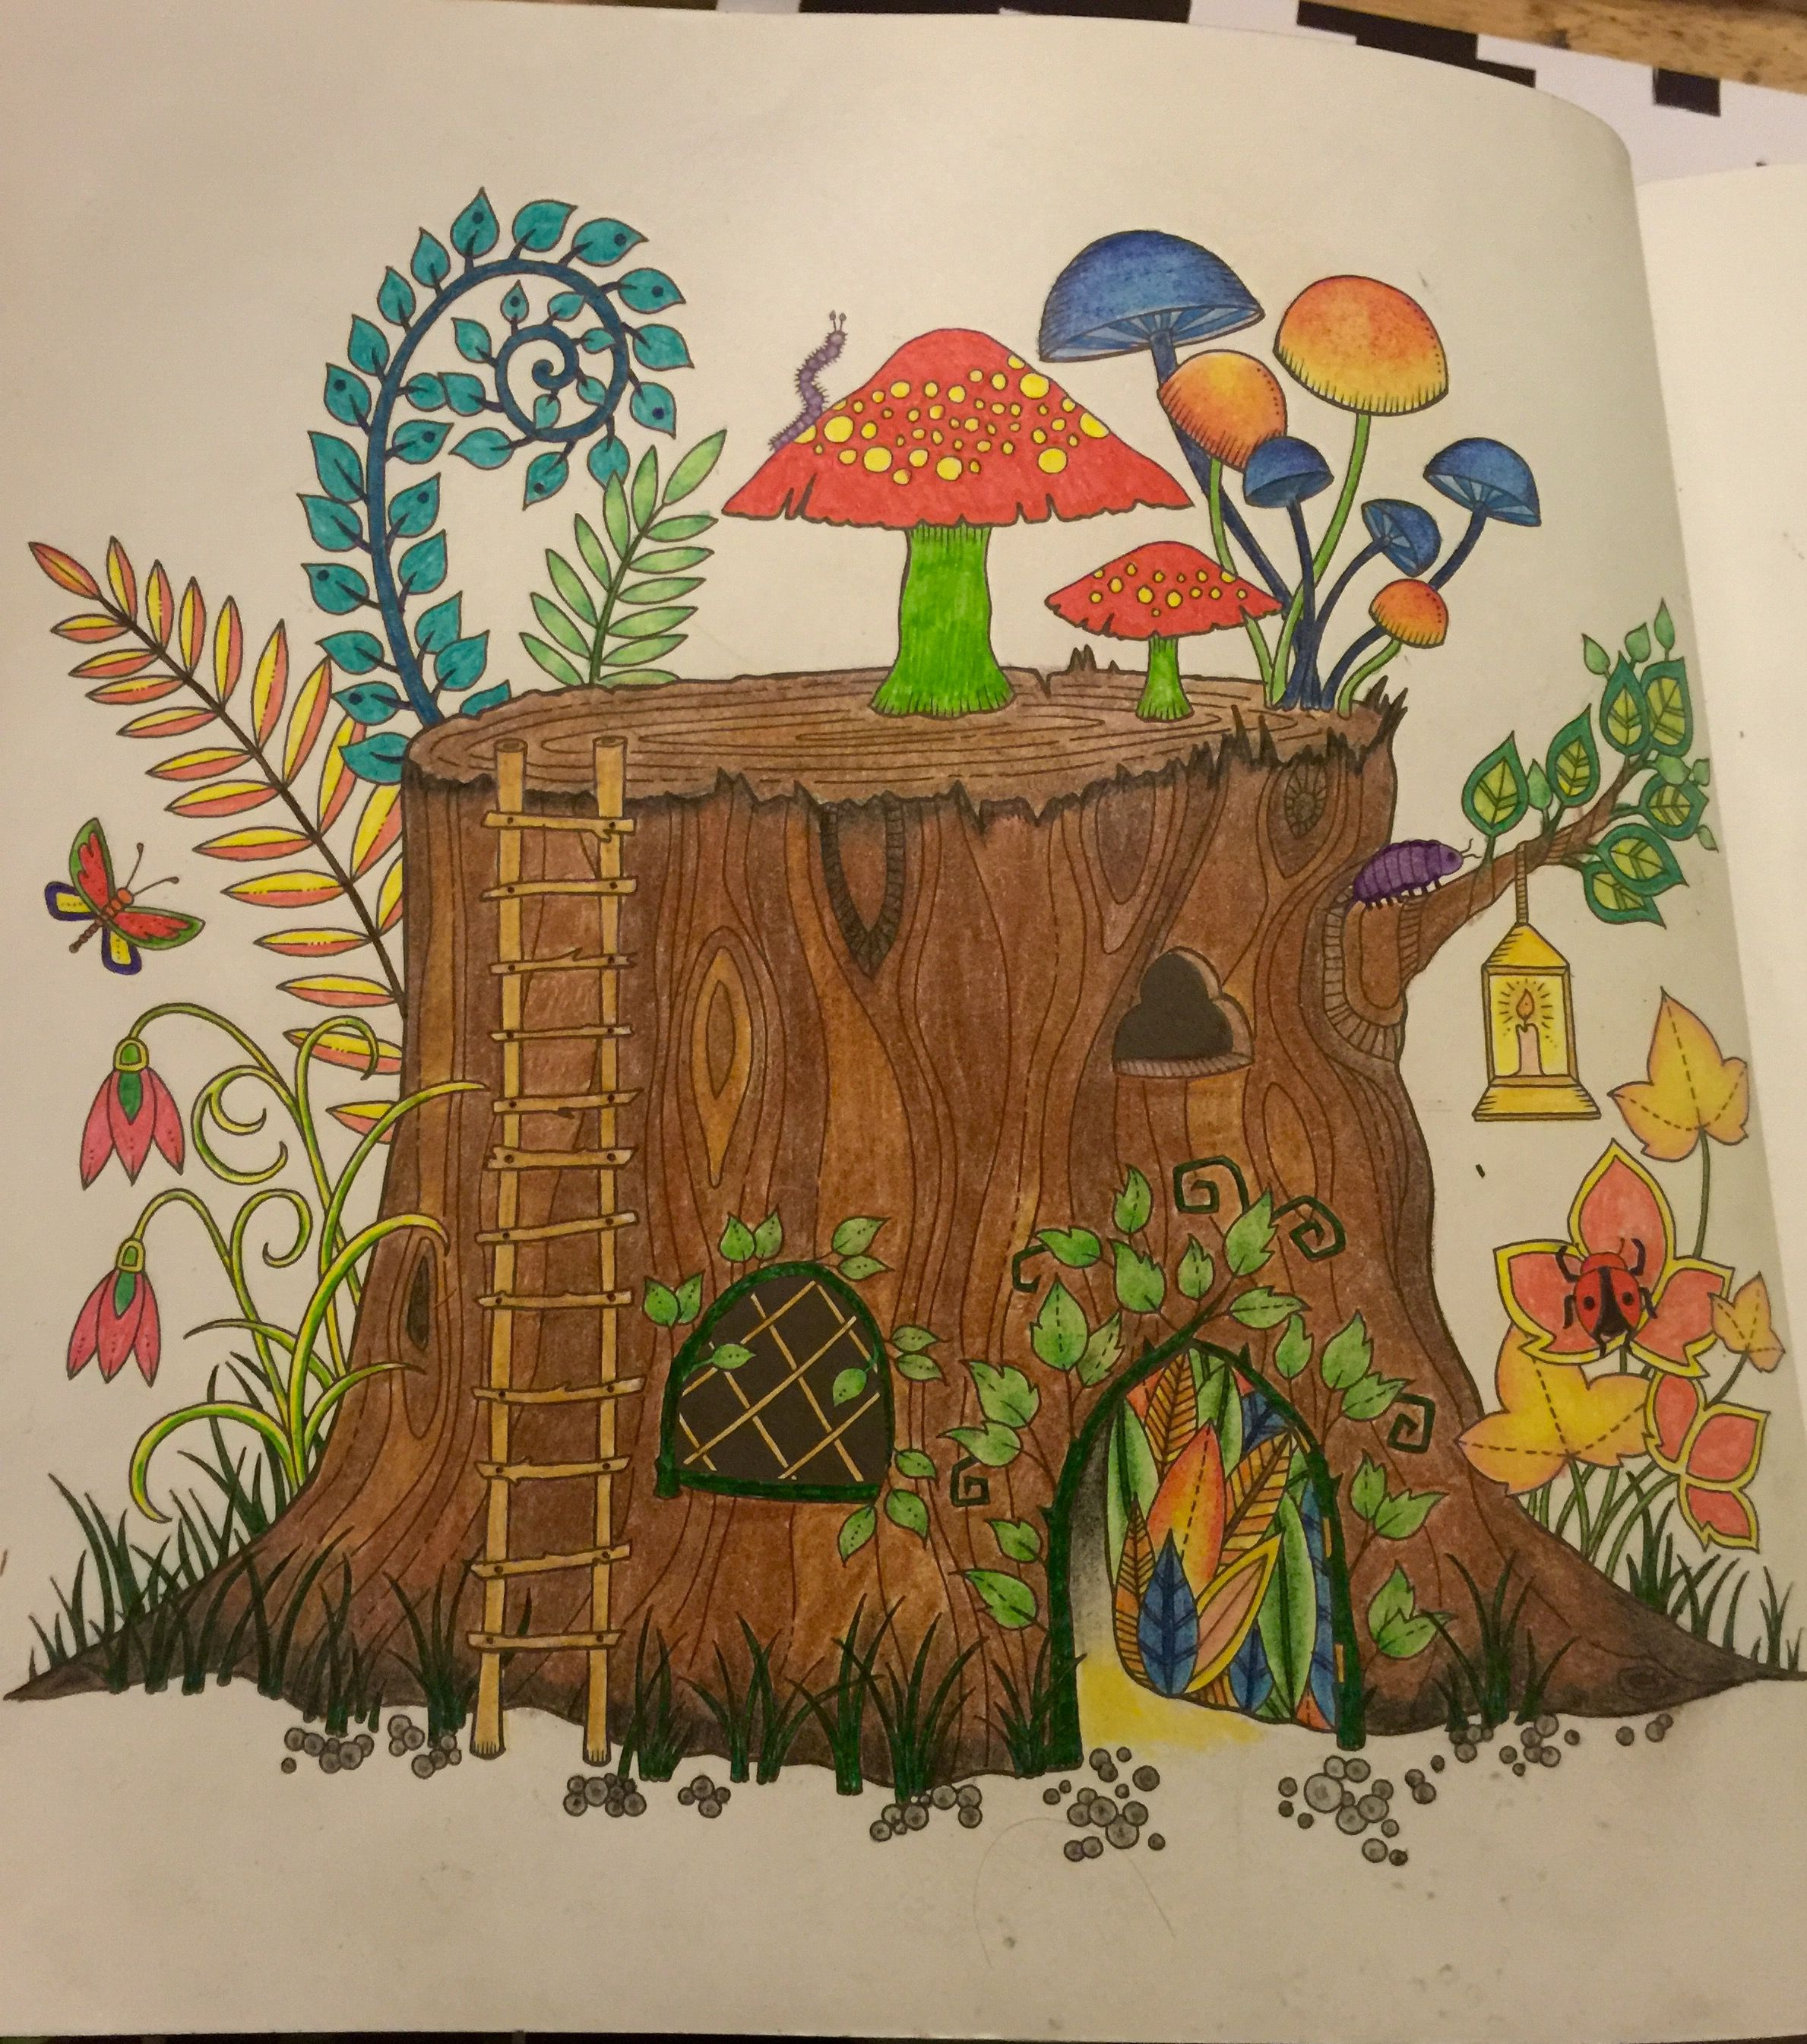 Enchanted forest coloring book website - Tree Stump Enchanted Forest Coloring Book